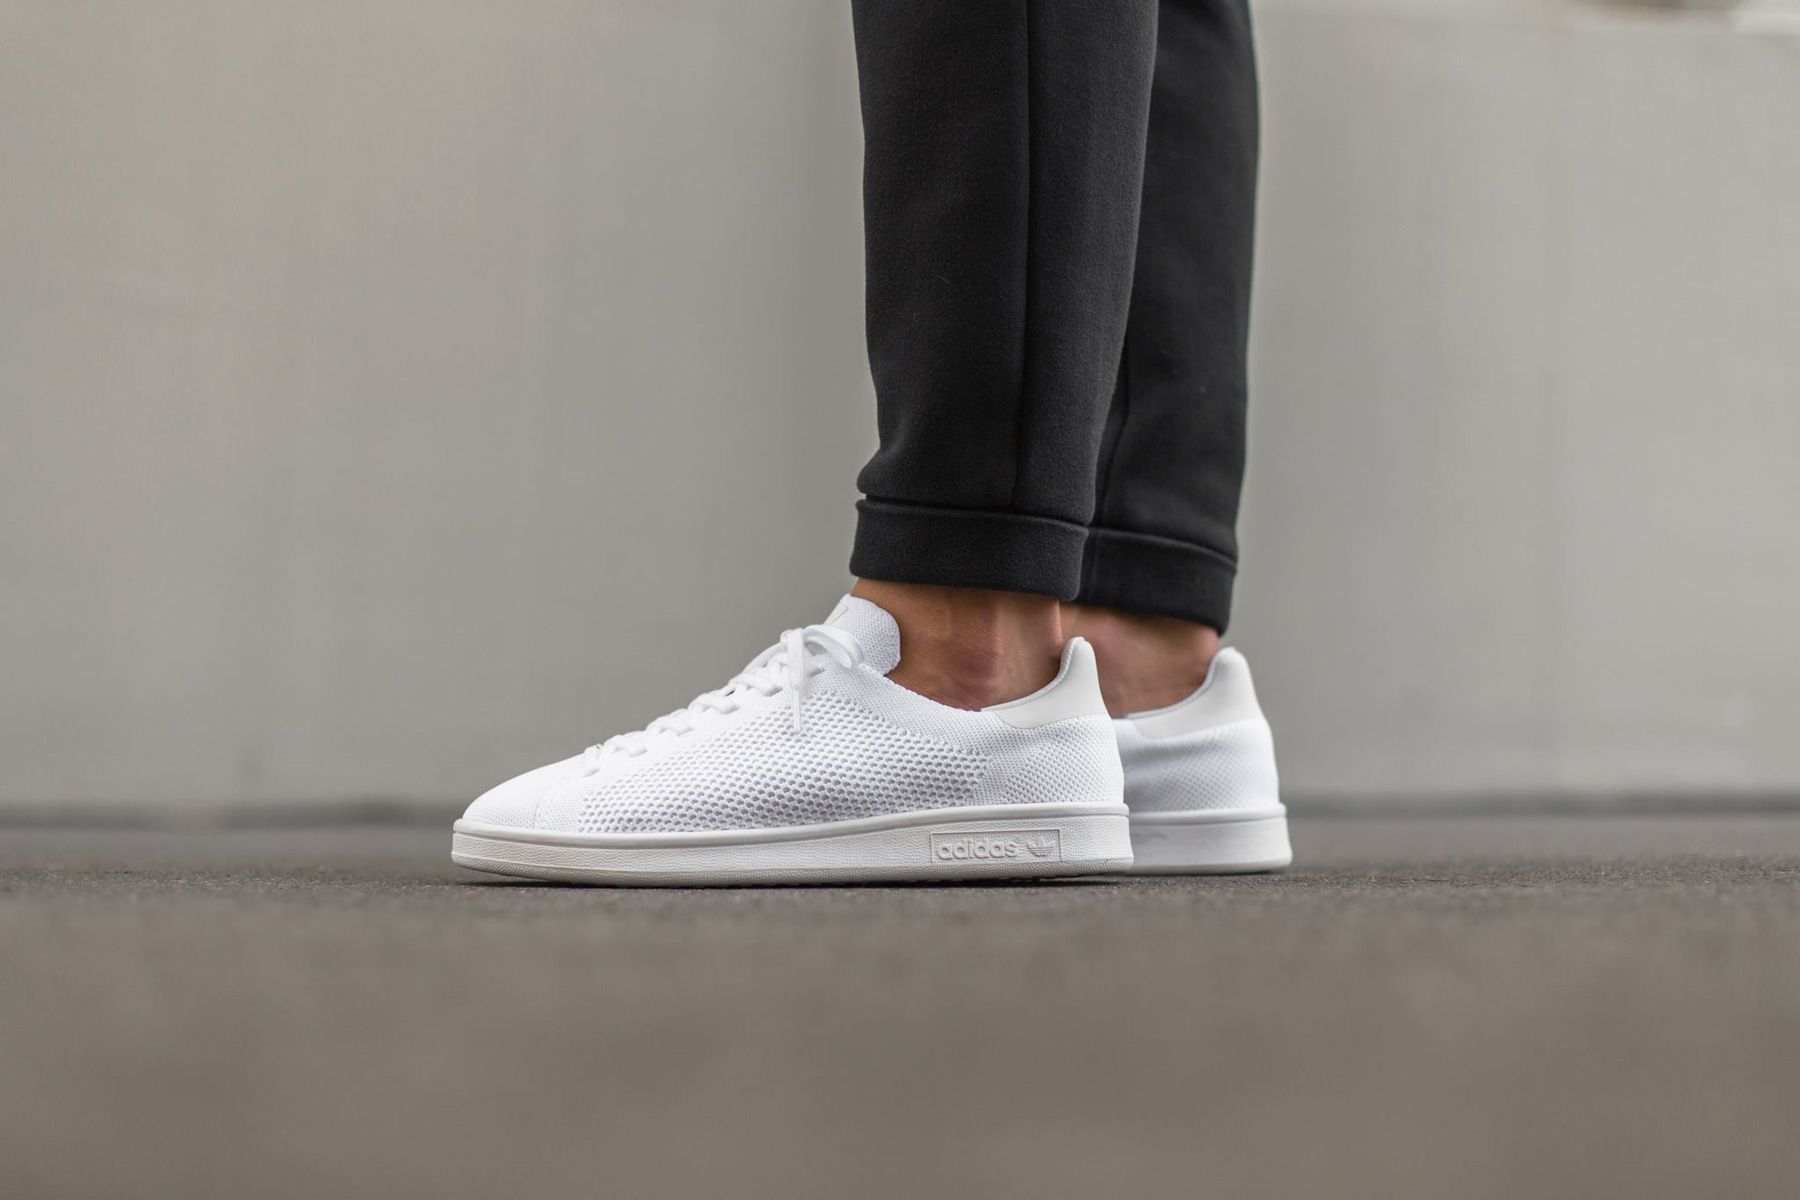 uk availability 484ea 88d0b adidas Originals Stan Smith Primeknit White White